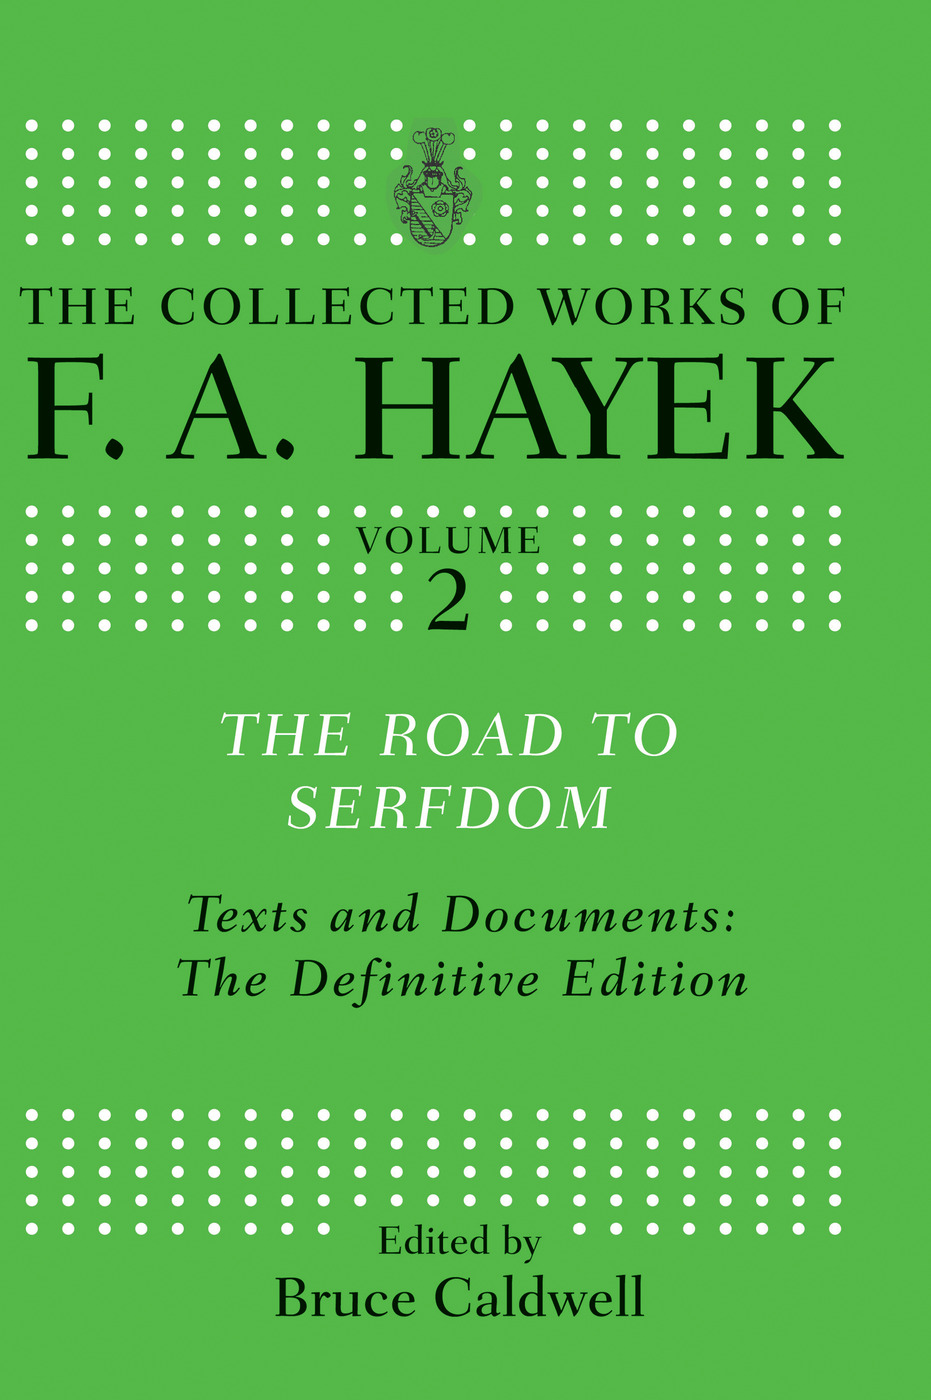 The Road to Serfdom: Text and Documents: The Definitive Edition book cover